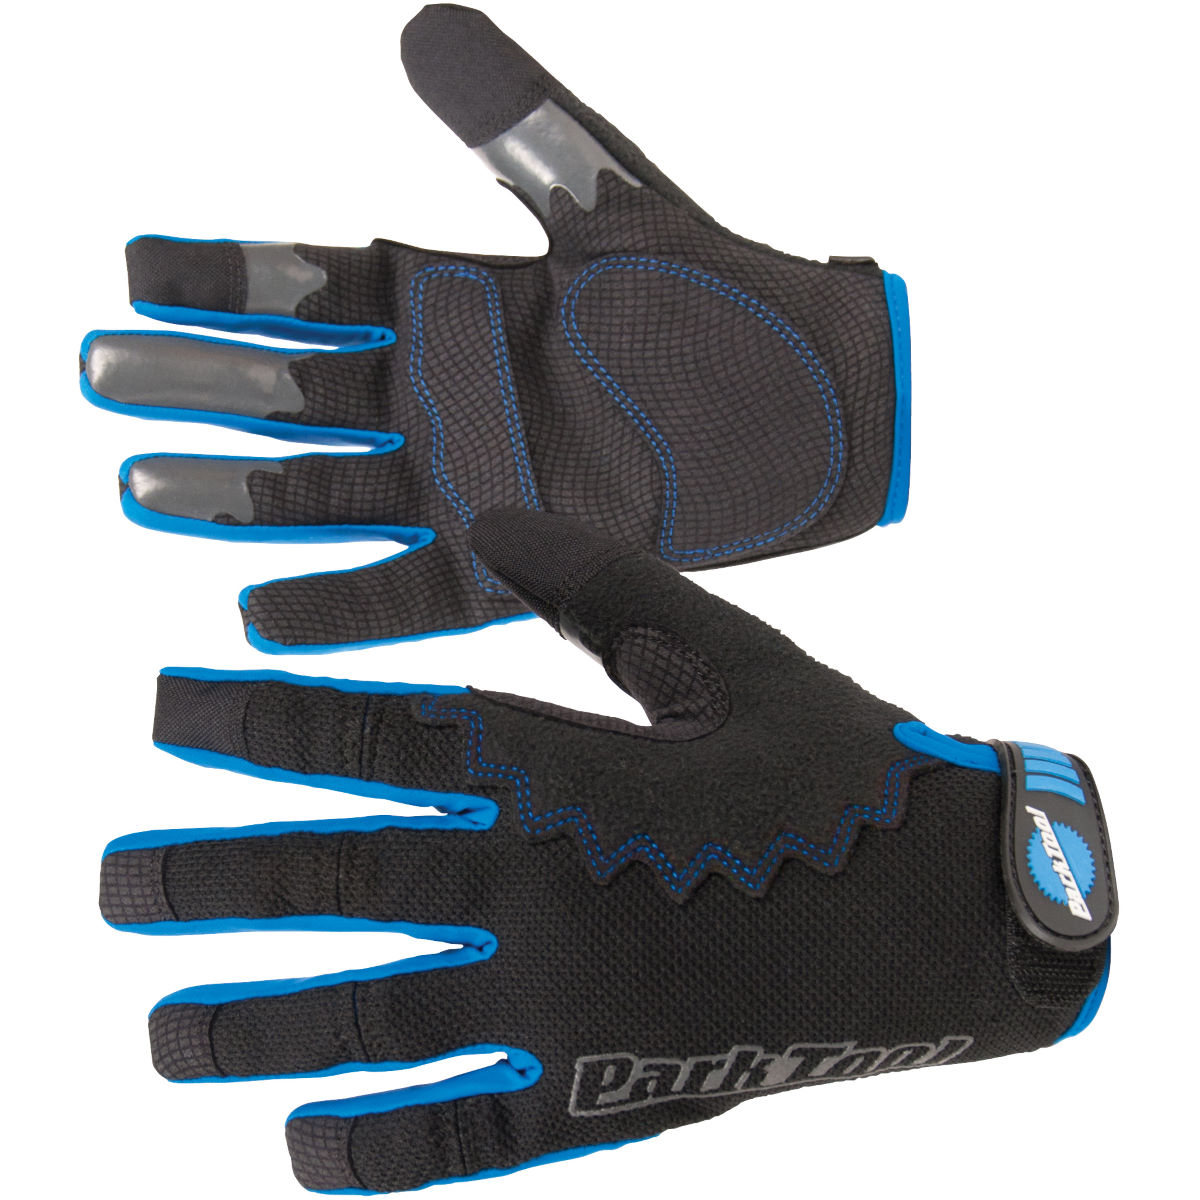 Park Tool Mechanic's Gloves GLV-1 - Guantes desechables